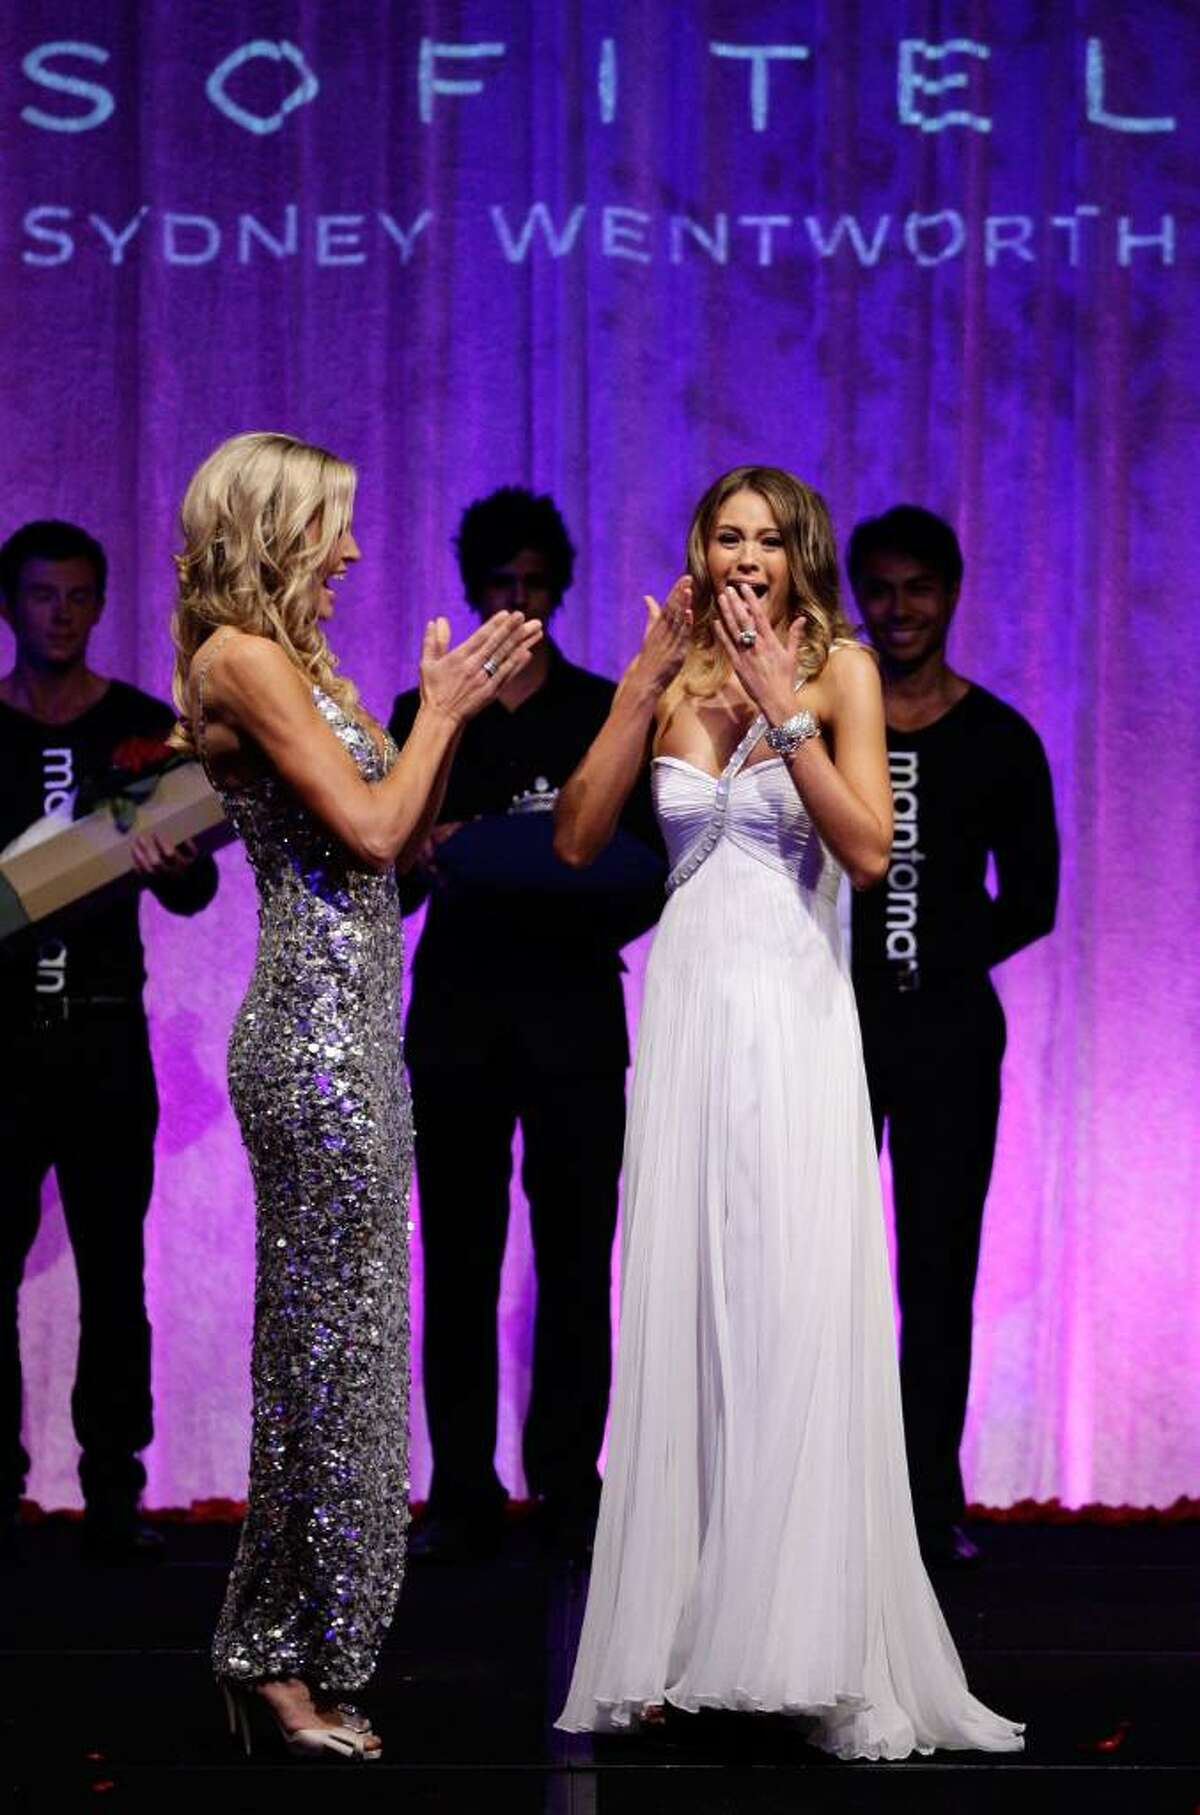 SYDNEY, AUSTRALIA - JUNE 17: Finalist Jesinta Campbell (R) of NSW celebrates with runner up Renae Wauhop (L) of Western Australia after being announced winner at the official crowning ceremony for Miss Universe Australia 2010 at the Sofitel Wentworth Hotel on June 17, 2010 in Sydney, Australia. (Photo by Brendon Thorne/Getty Images) *** Local Caption *** Jesinta Campbell;Renae Wauhop